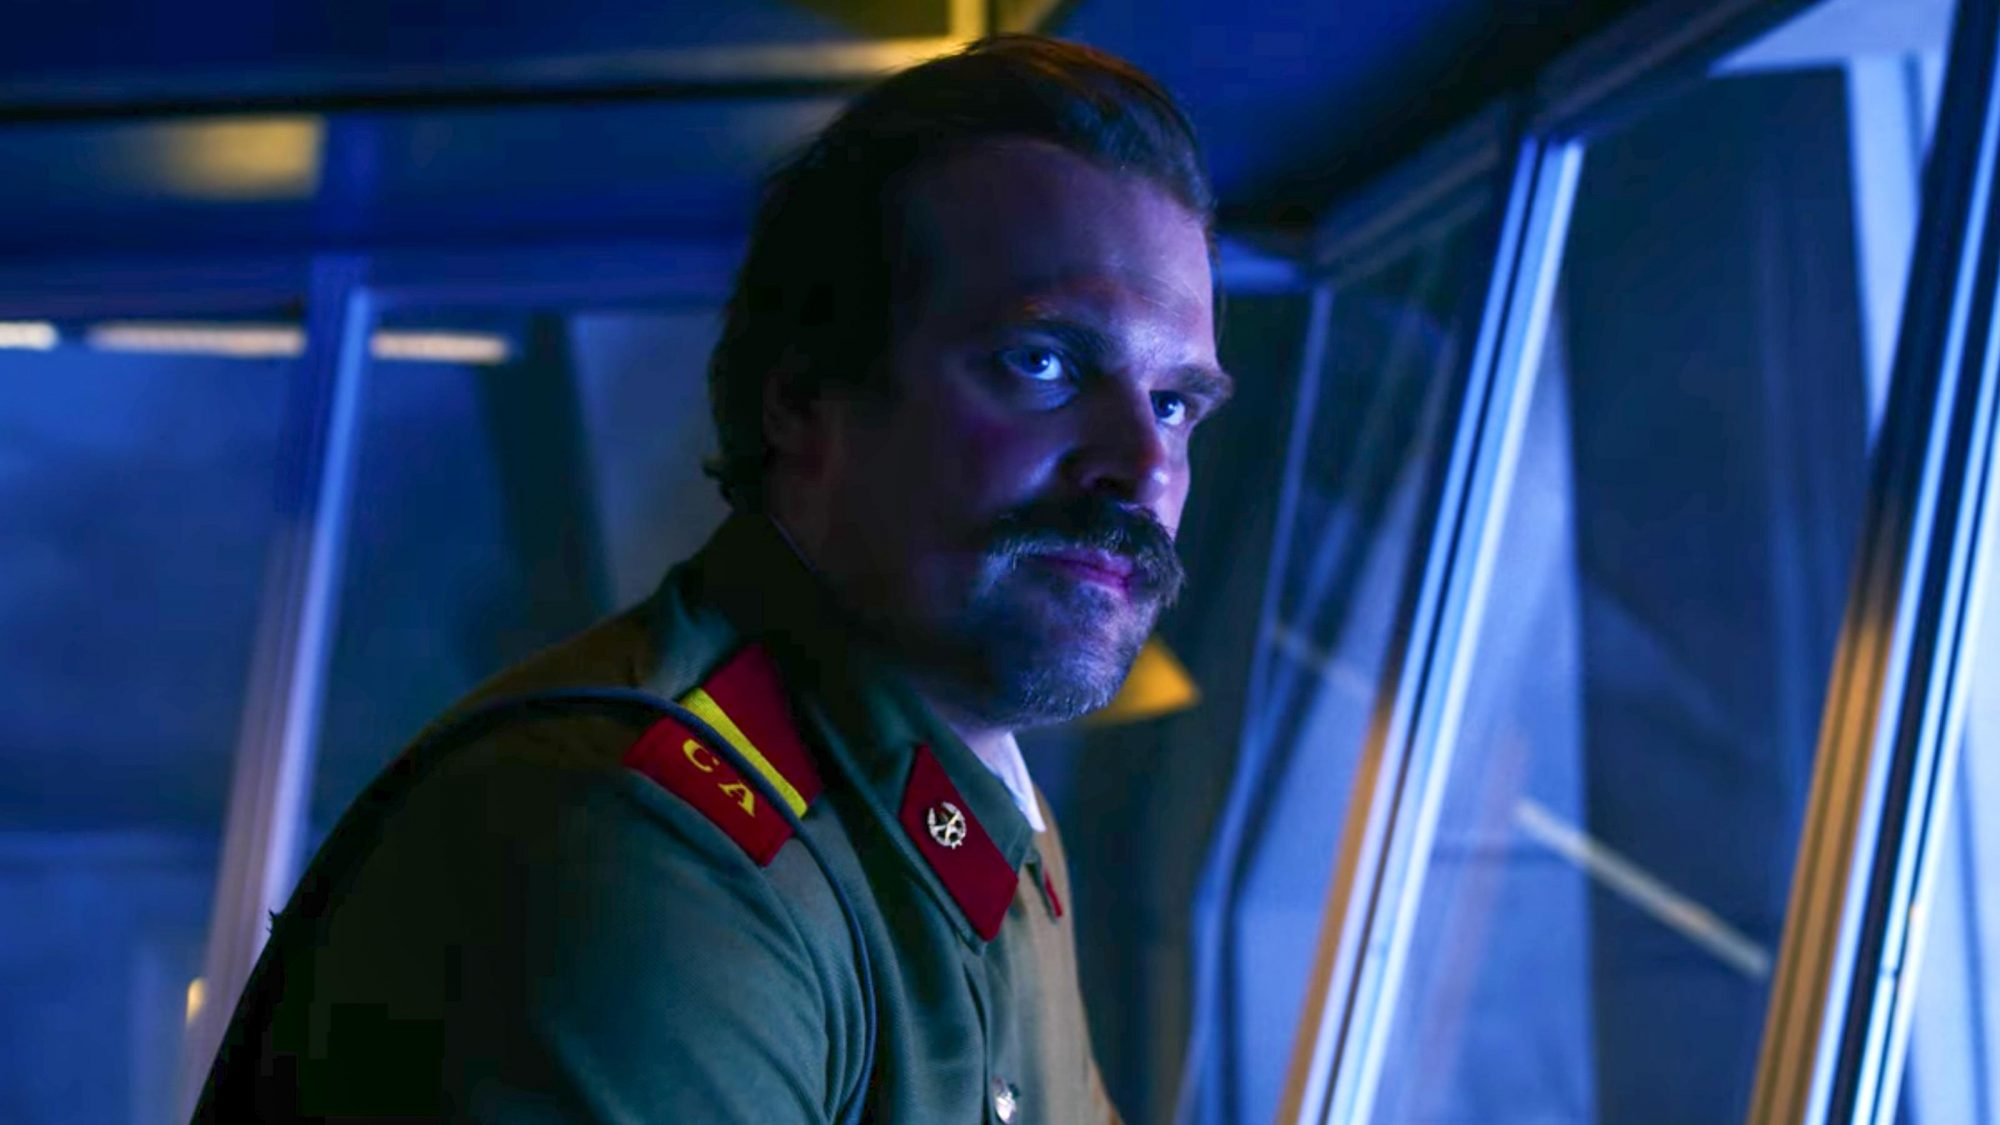 Stranger Things 3 Season 3, Episode 8 David Harbour as Jim Hopper CR: Netflix